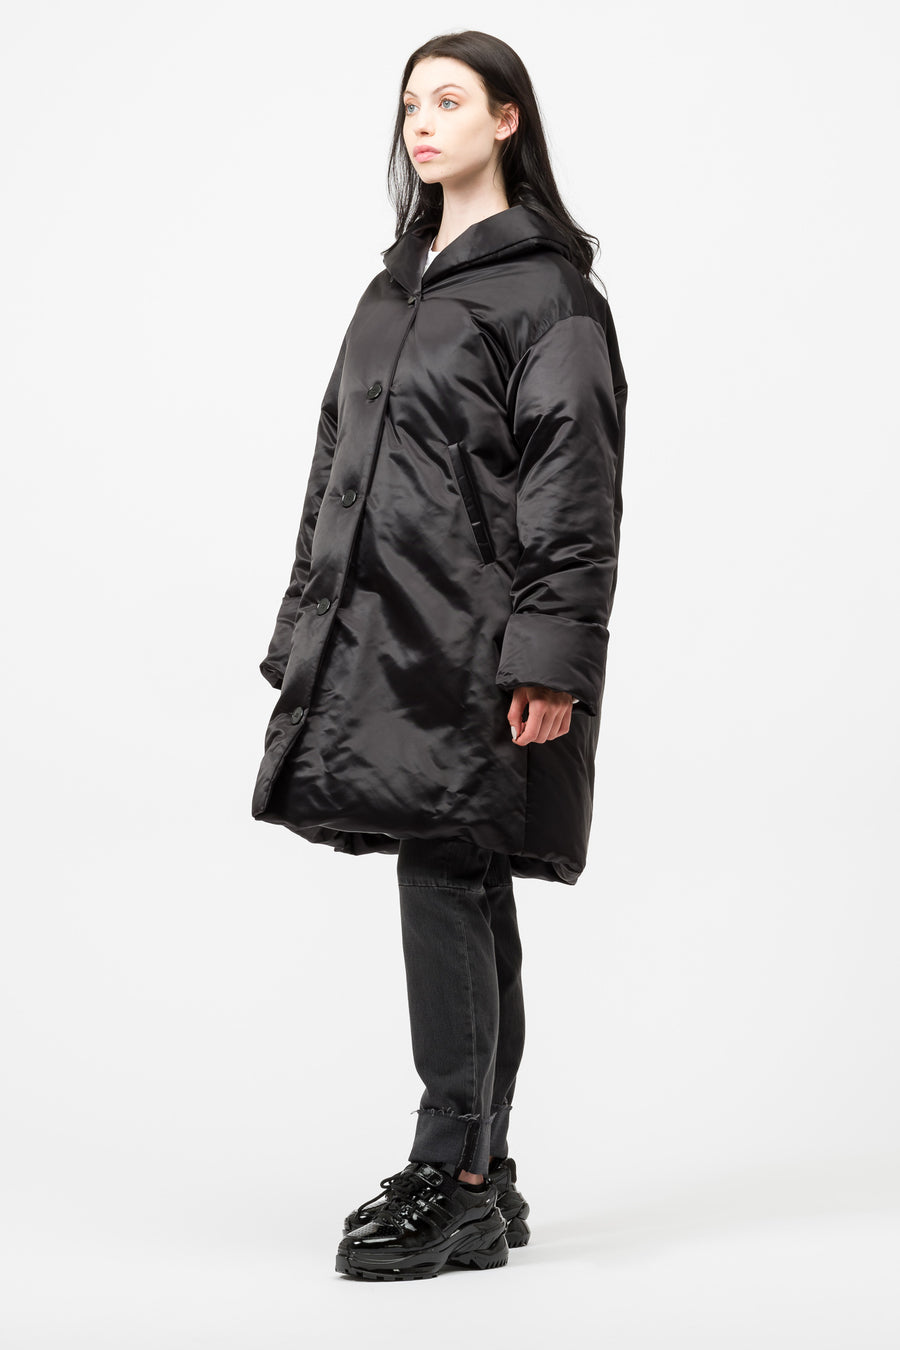 Maison Margiela MM6 Shawl Collar Puffer Coat in Black - Notre